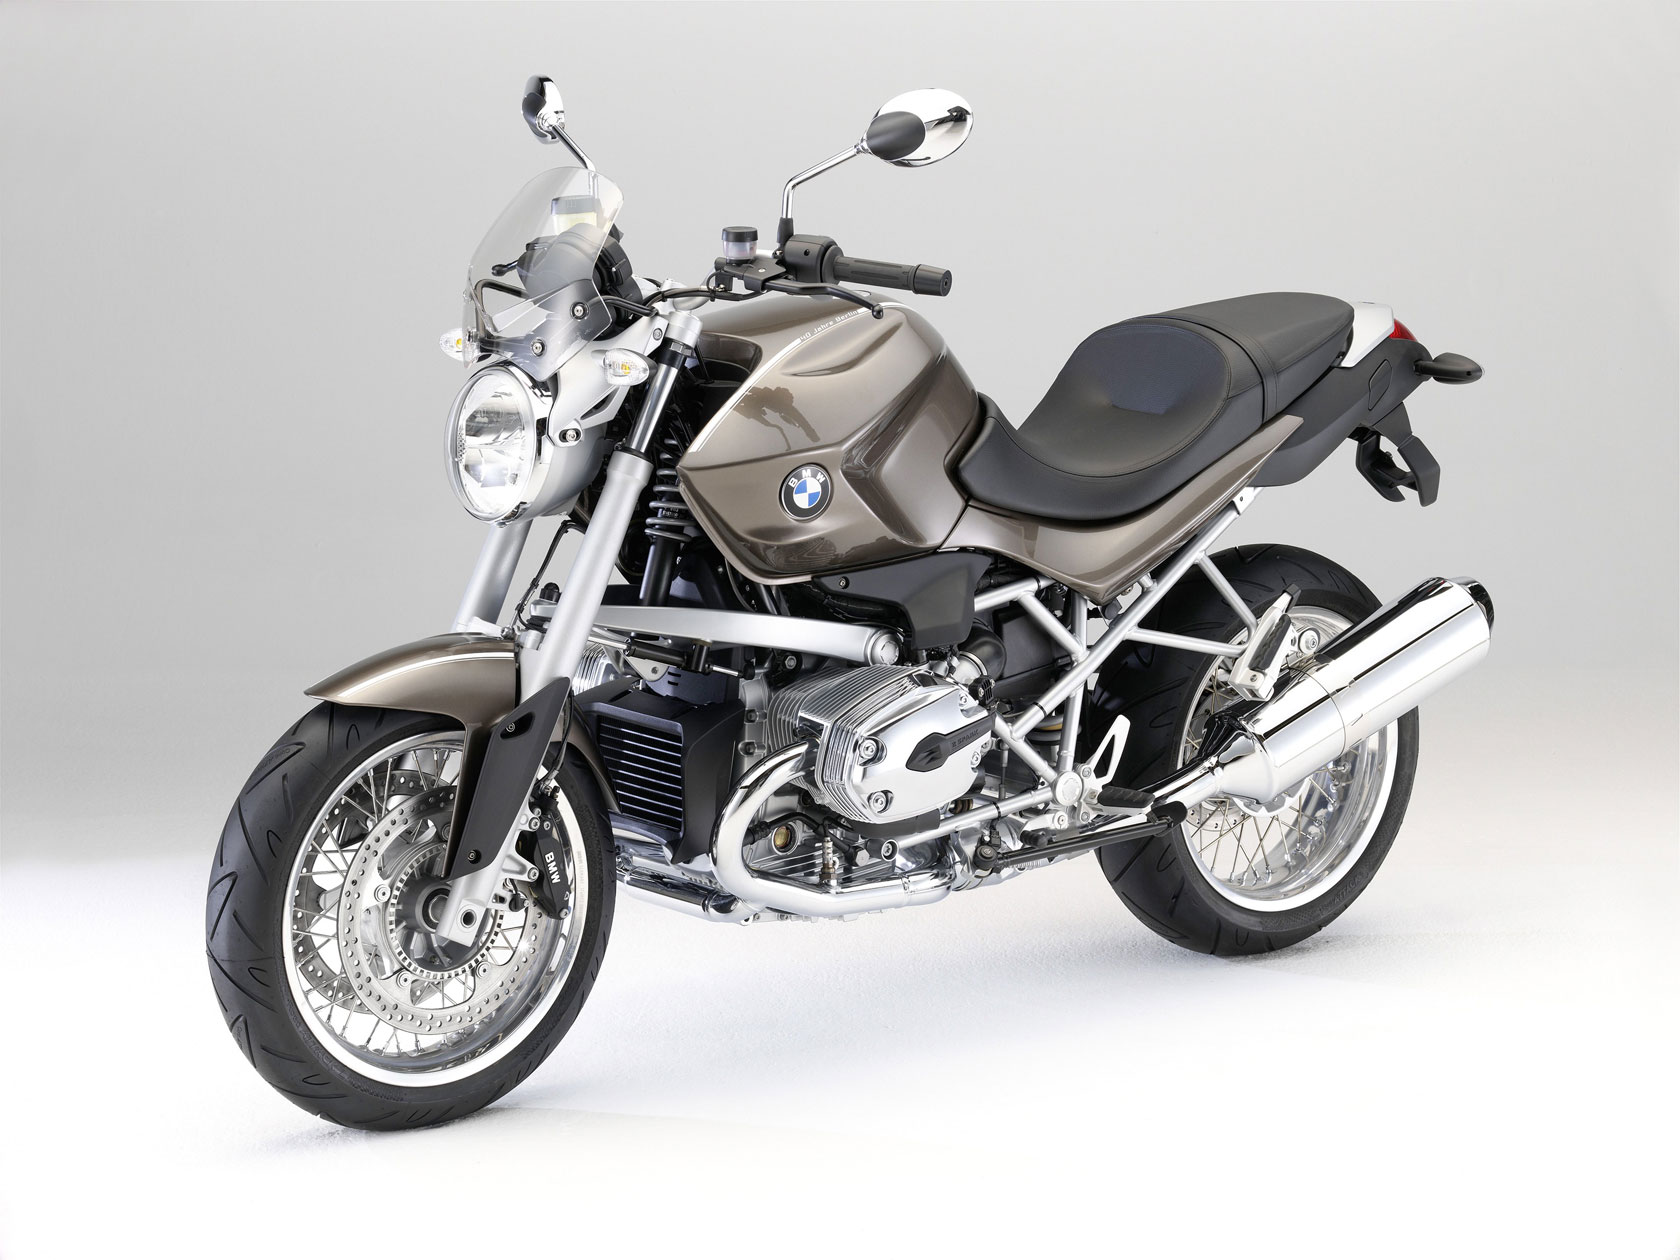 bmw r 1200 r classic specs 2010 2011 autoevolution. Black Bedroom Furniture Sets. Home Design Ideas